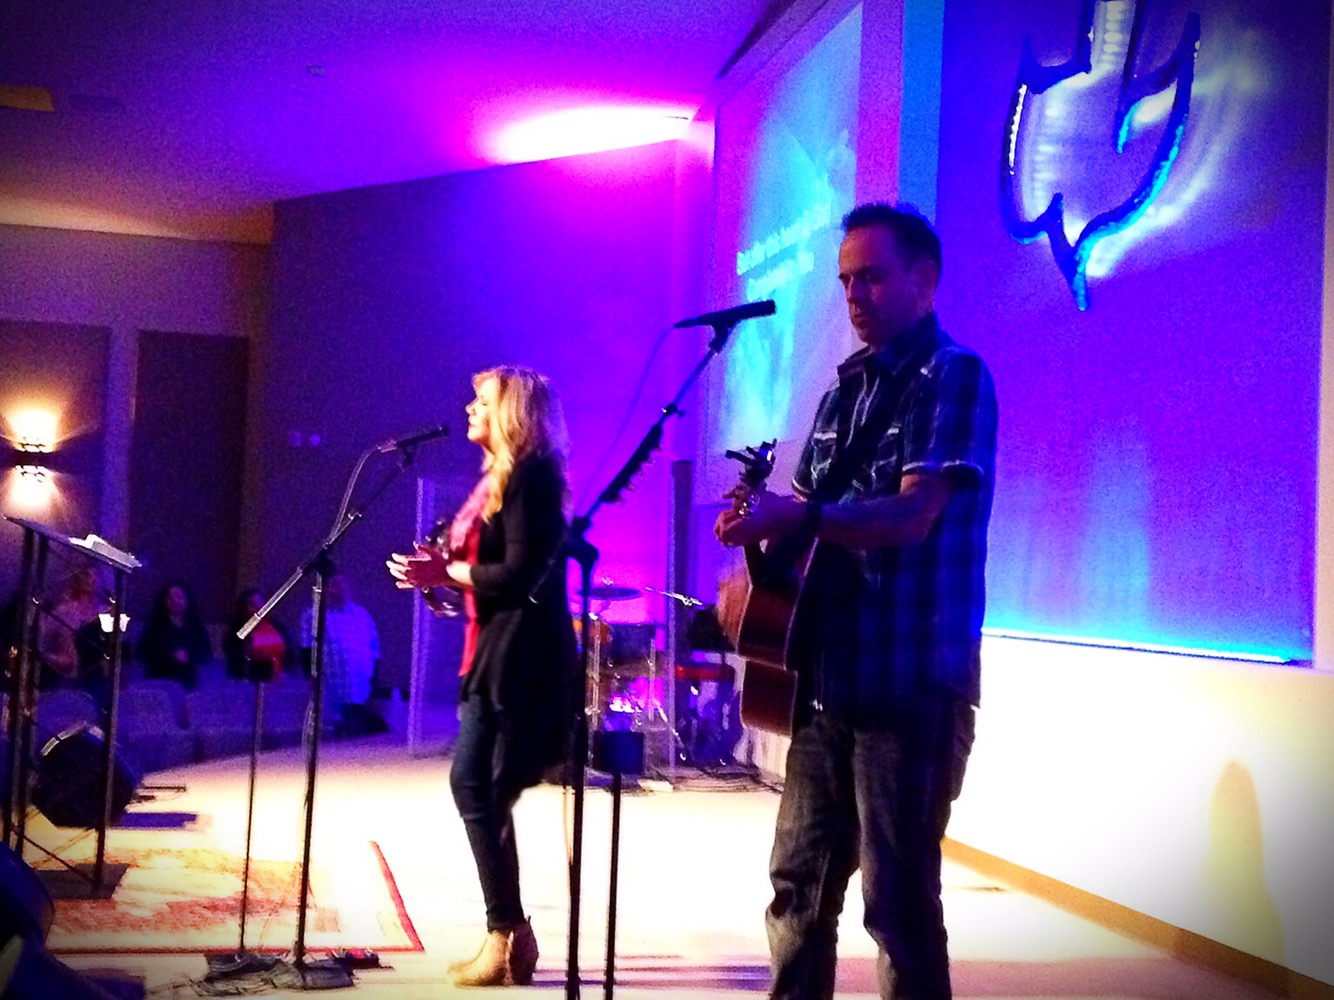 m da landers page adore tour  a great big thank you to calvary chapel chino valley for having allen and i out tonight to lead worship it was wonderful to see david and marie ro s